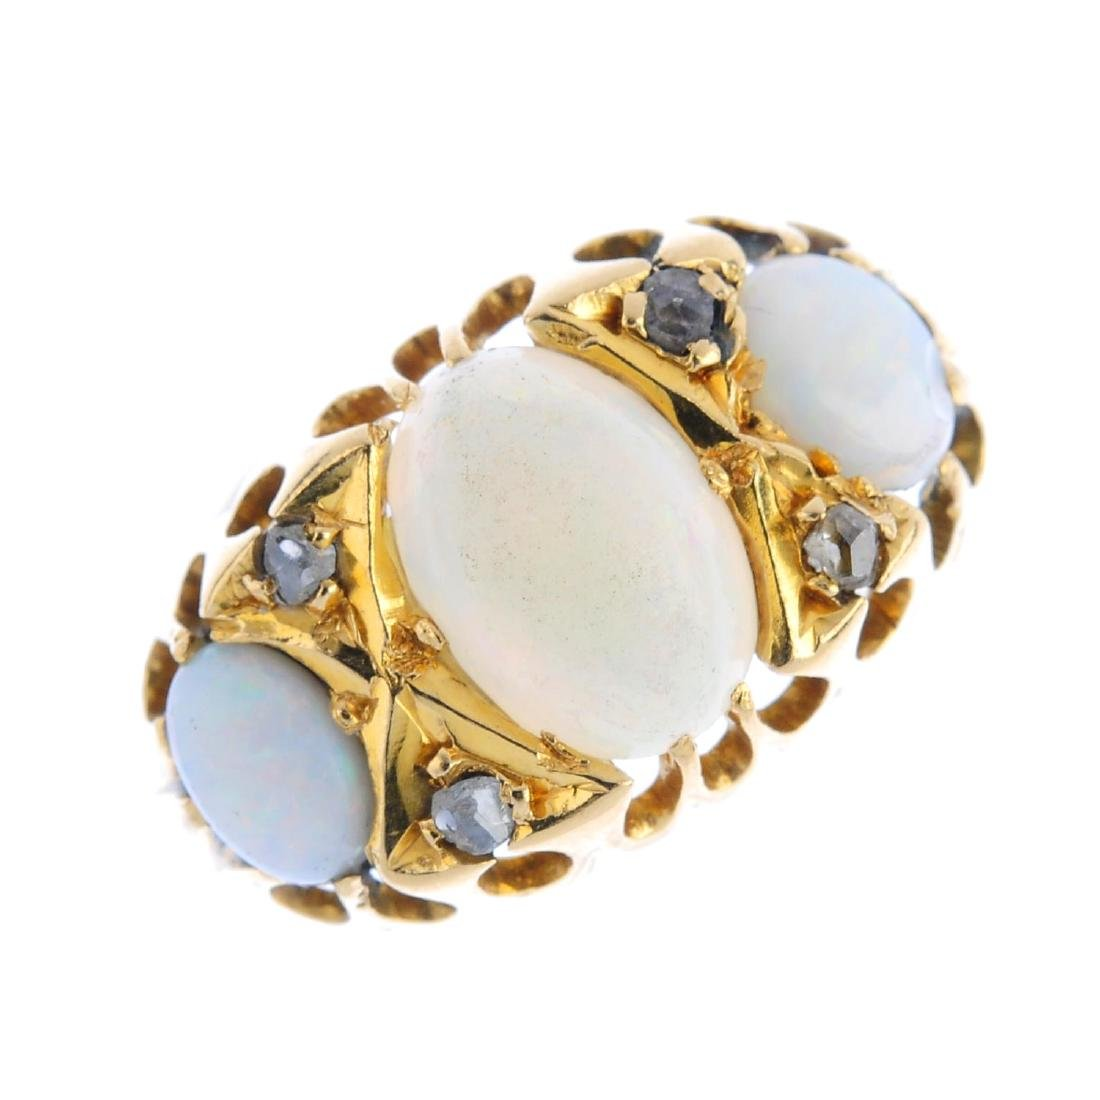 An Edwardian 18ct gold opal and diamond ring. The oval